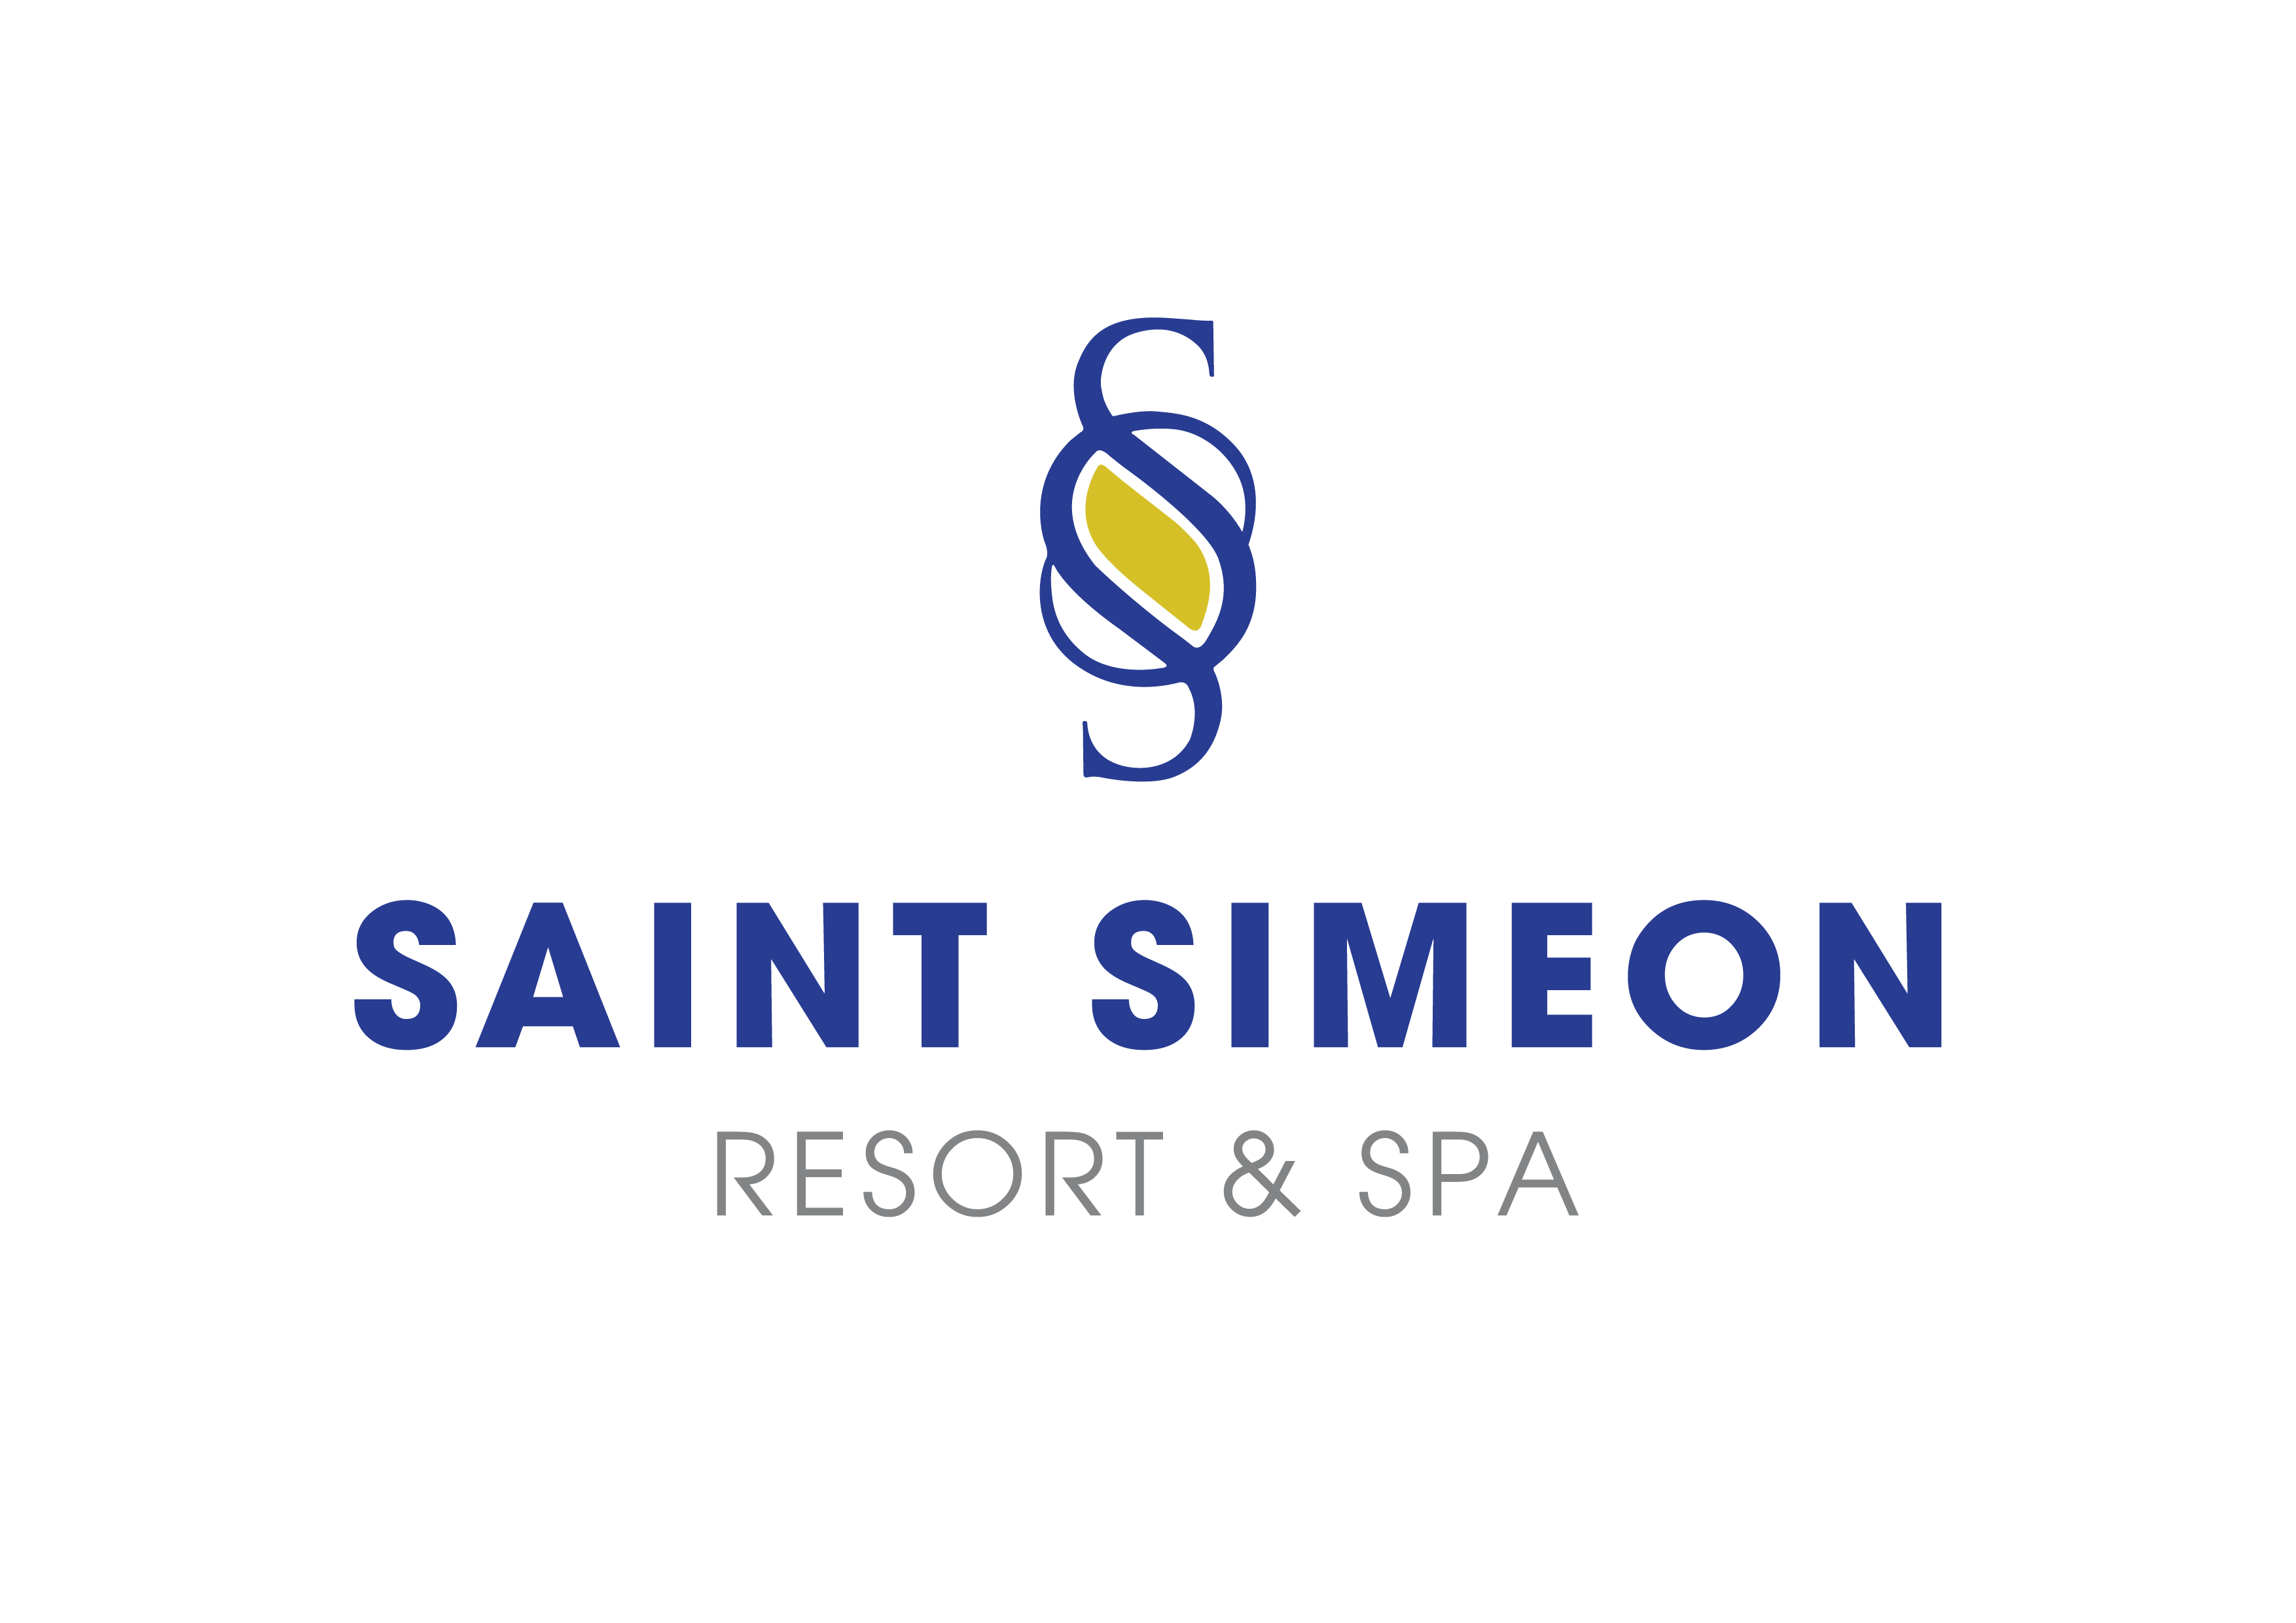 SAINT SIMEON RESORT & SPA